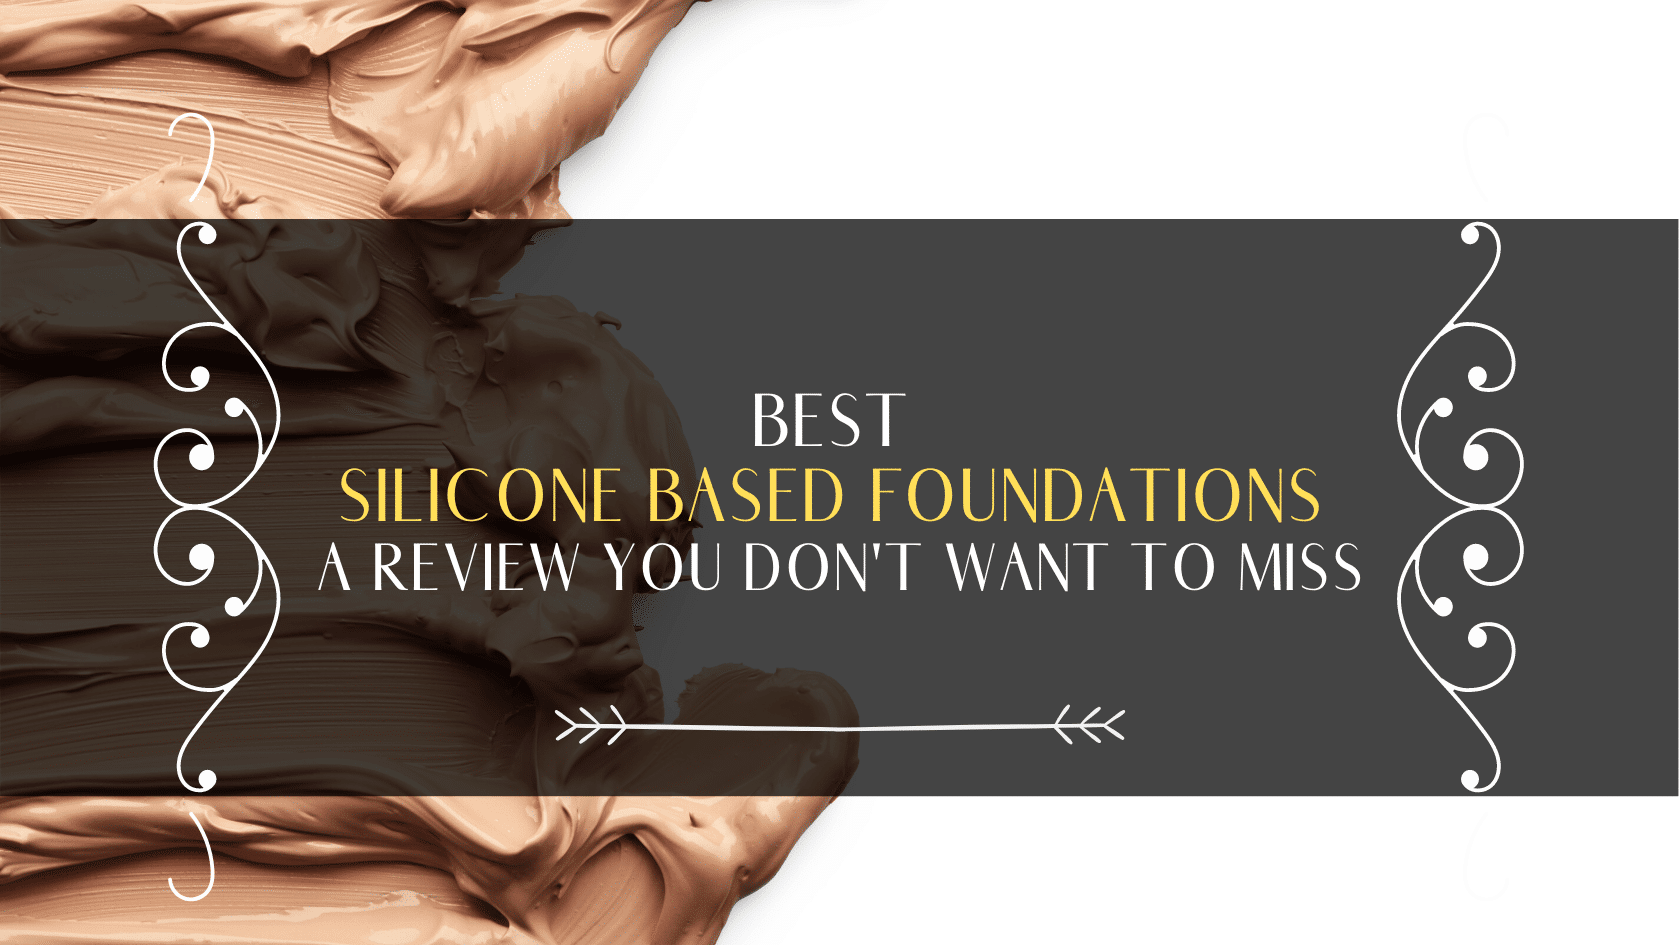 best silicone based foundations